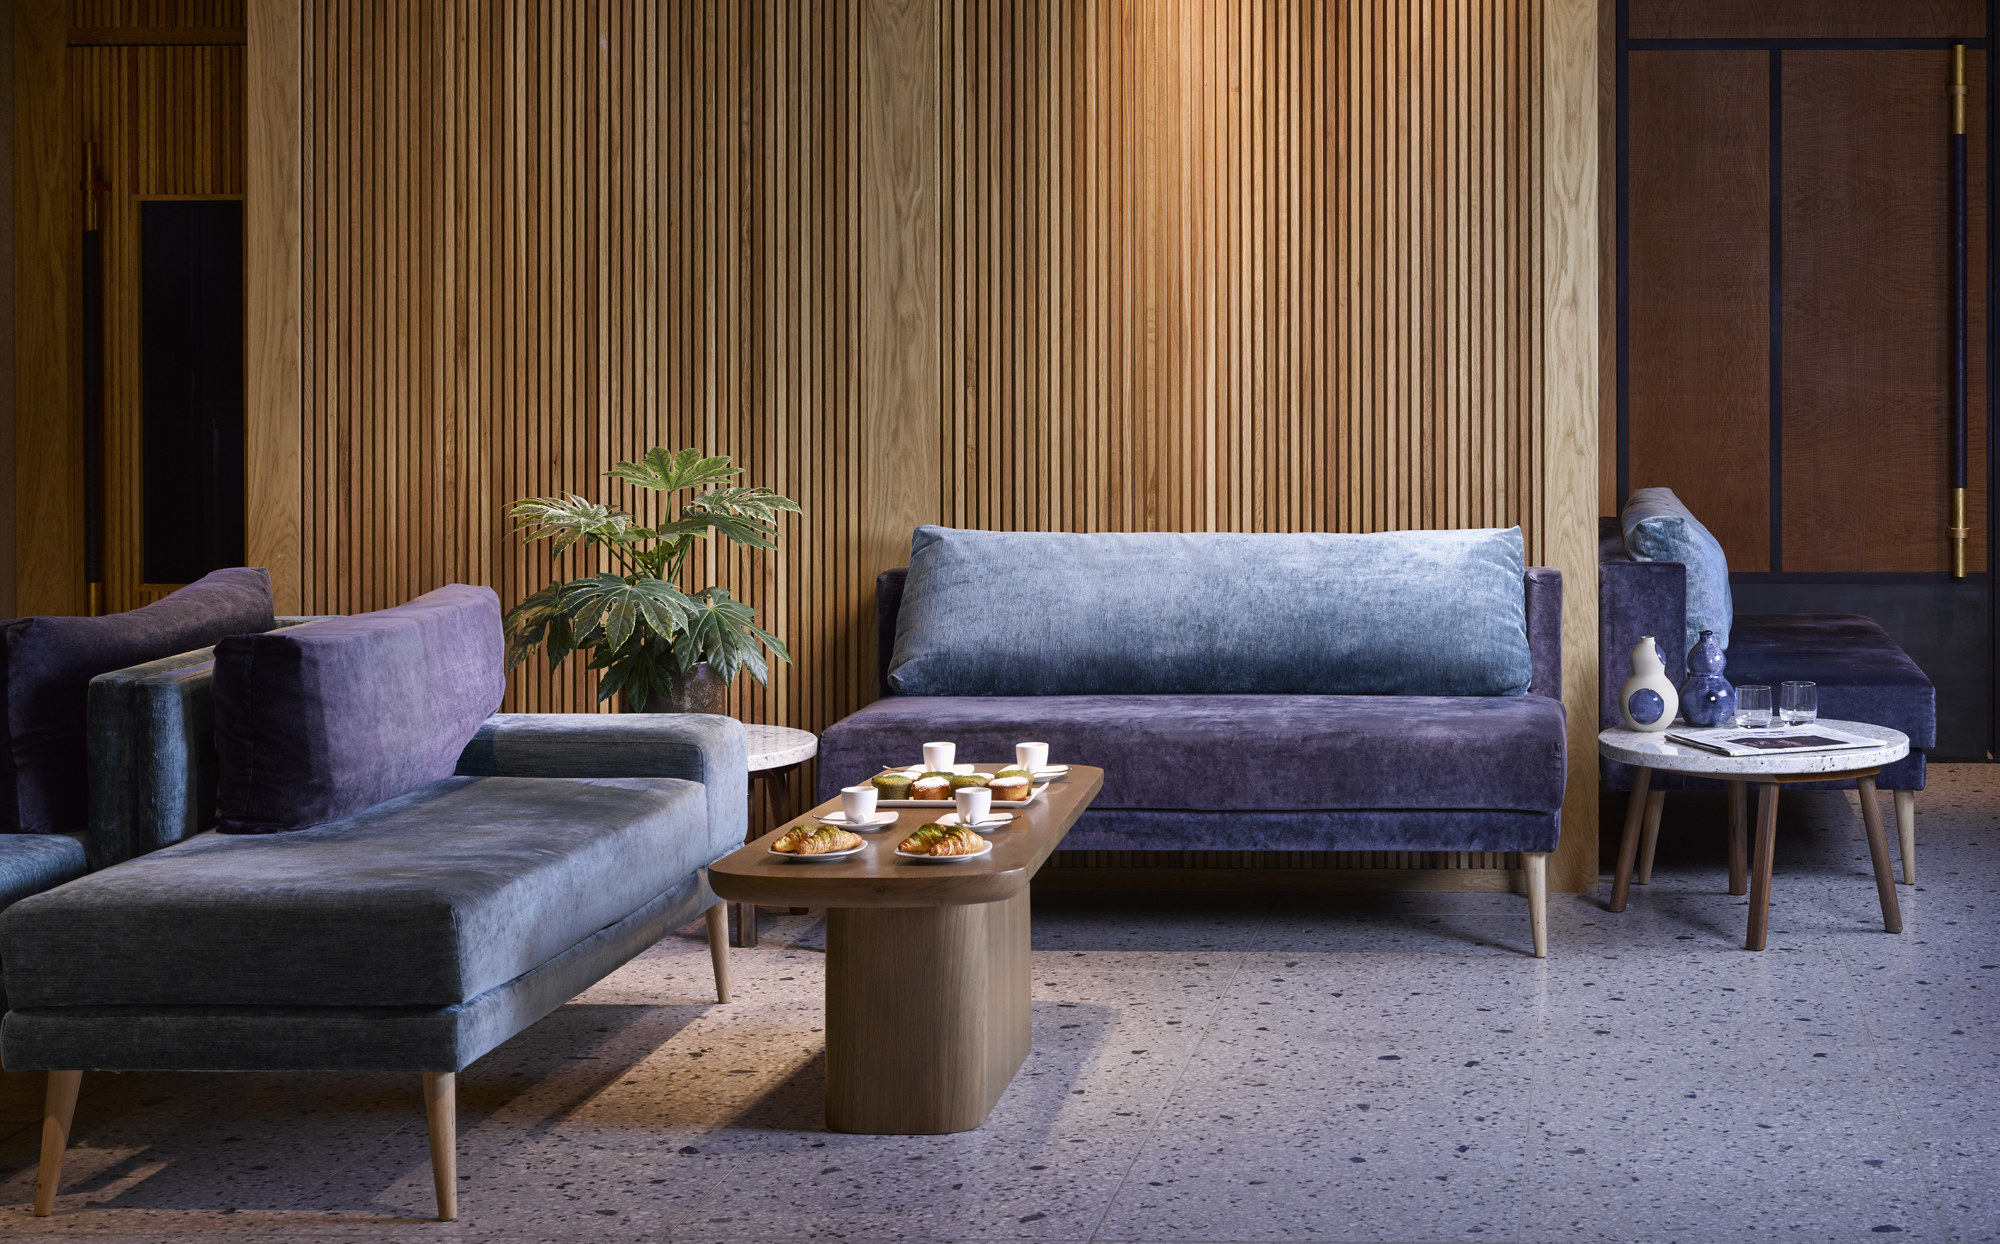 Nobu Shoreditch london hotels venue hire private events arty and designer interiors purple lounge